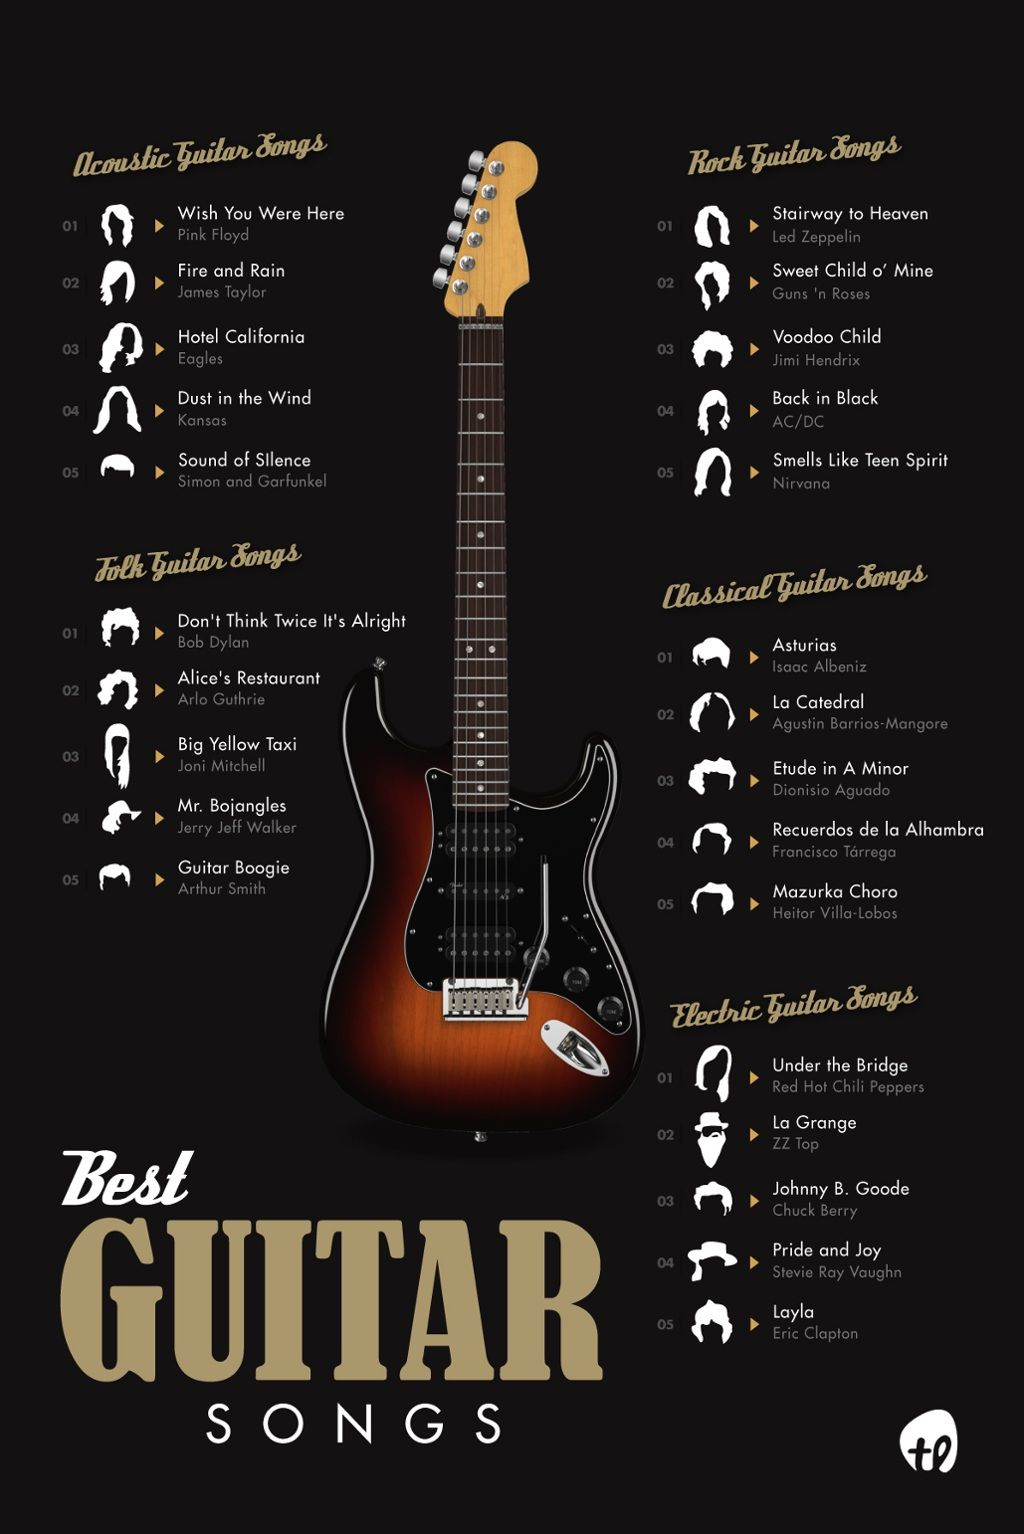 The 50 Best Guitar Songs Ever From Different Eras Genres Guitar Songs Guitar Songs For Beginners Guitar